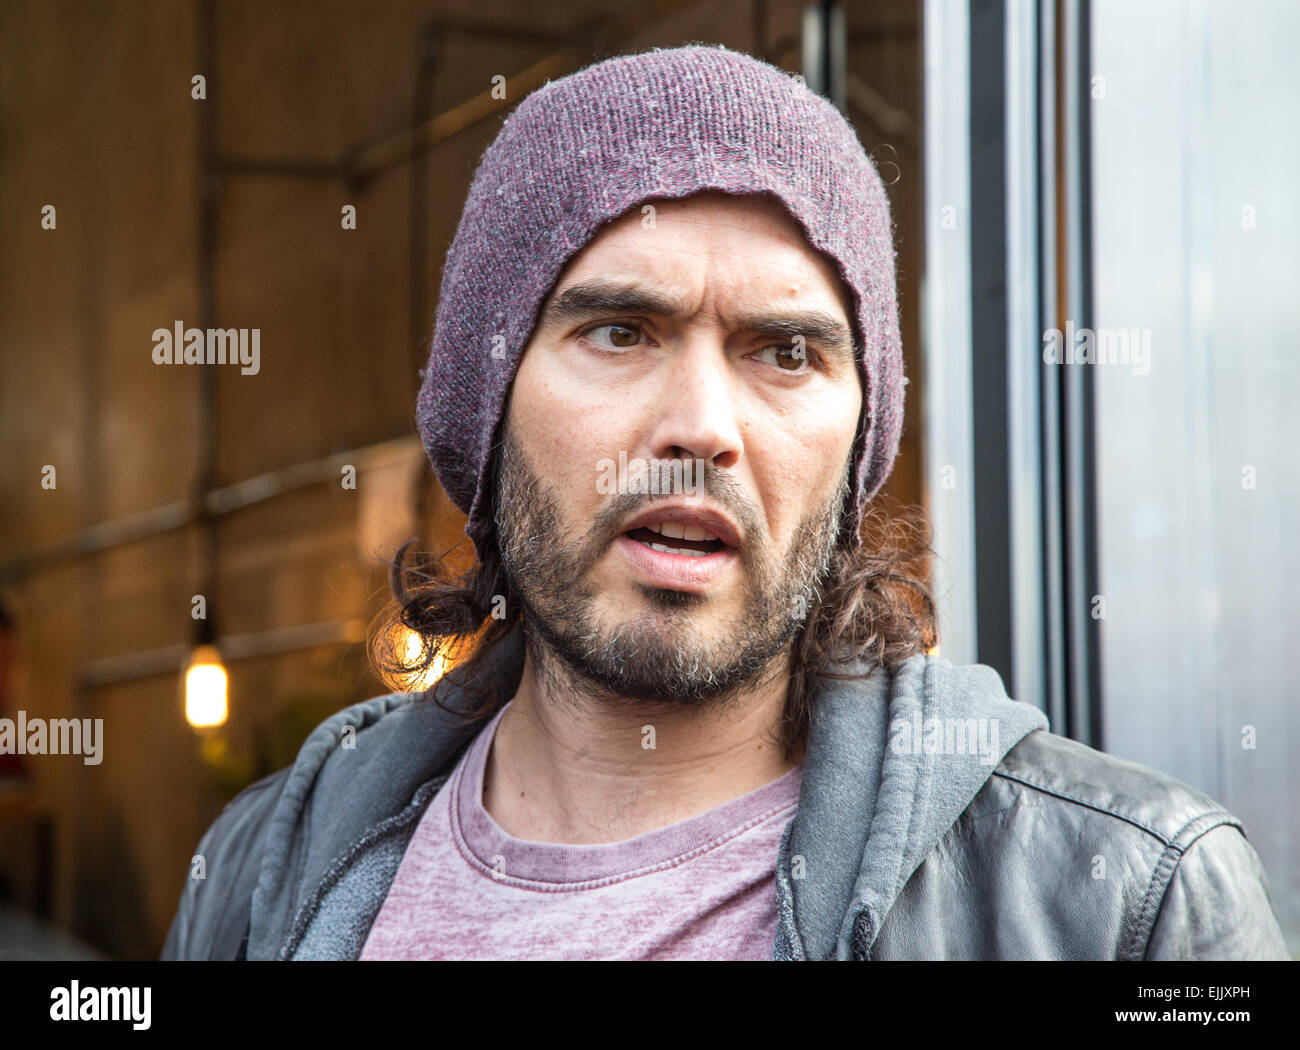 Russell Brand outside the Trew Era community cafe in Hoxton  funded using money from the sales of his book 'Revolution' - Stock Image